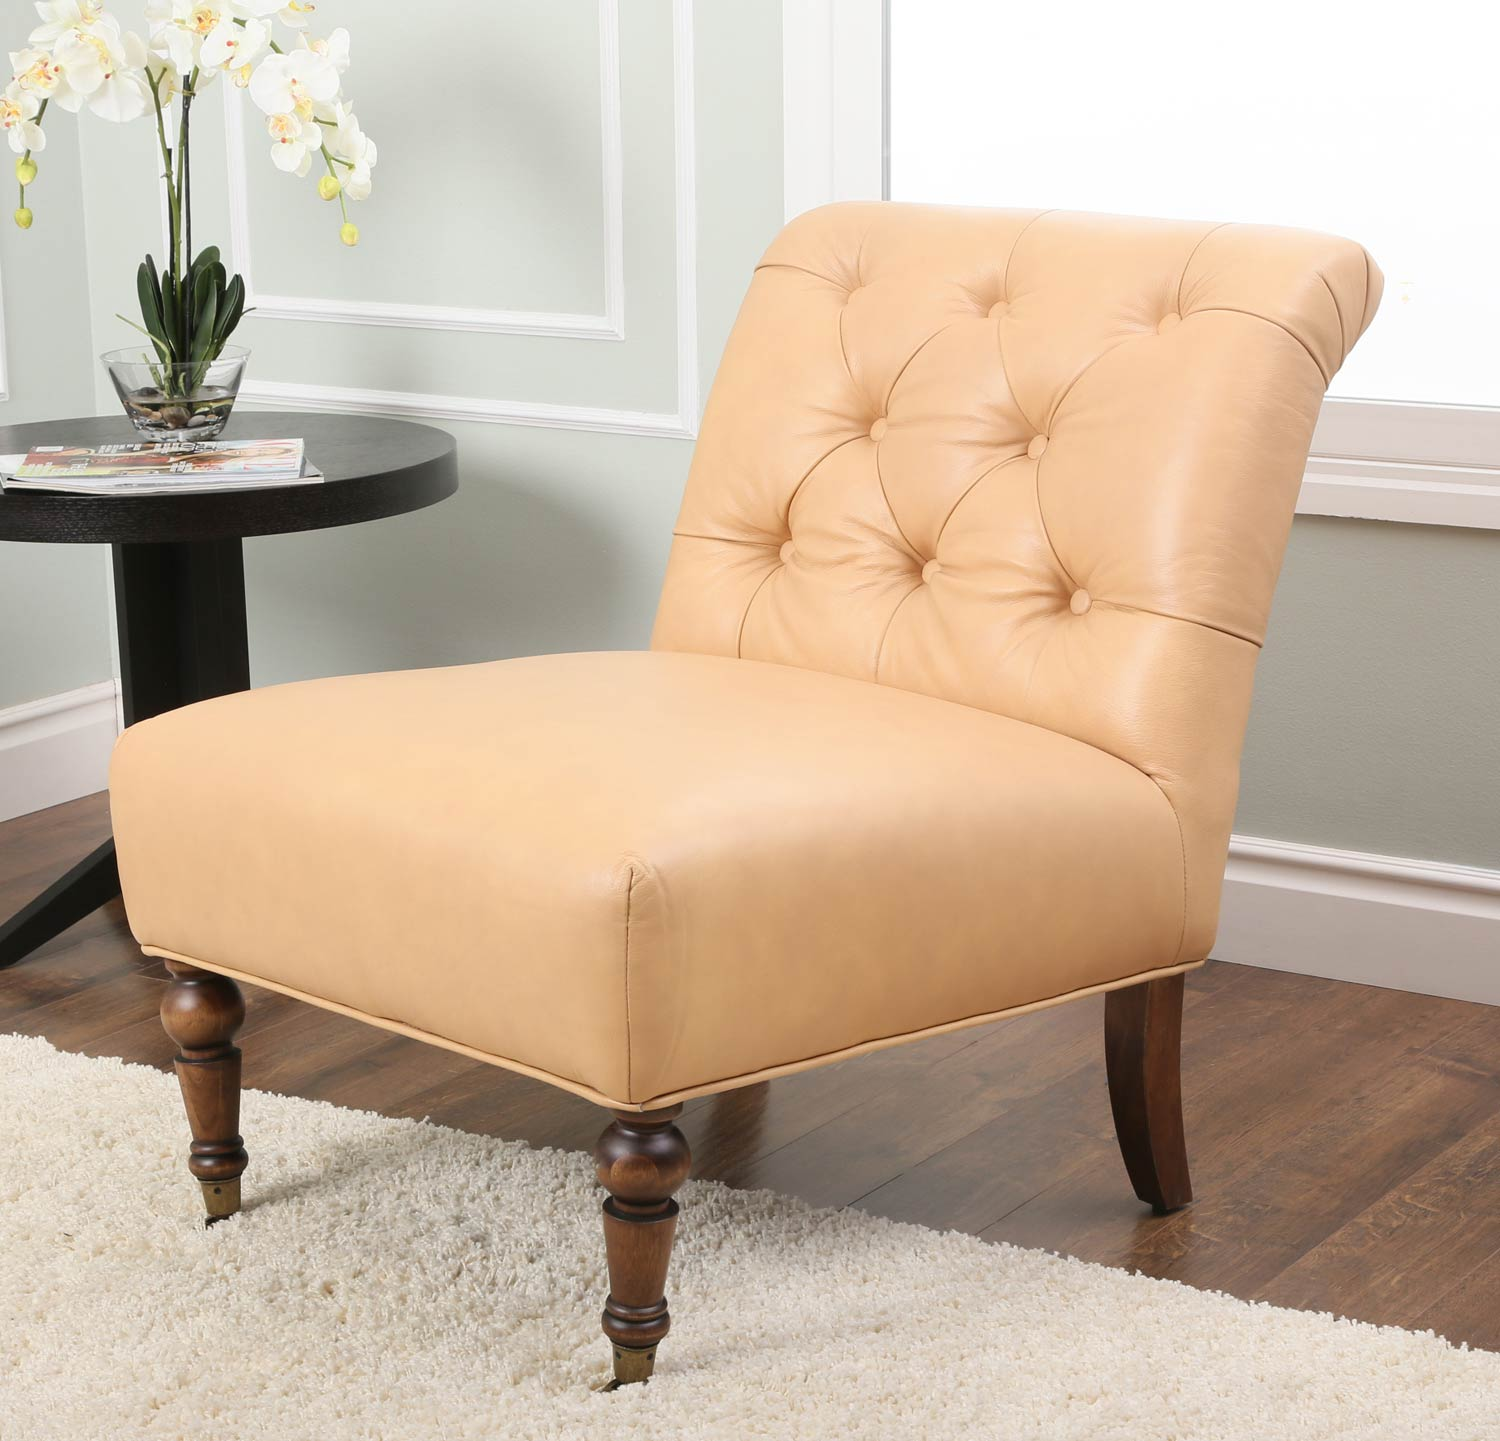 Abbyson Living Monica Pedersen Tufted Leather Chair - Camel